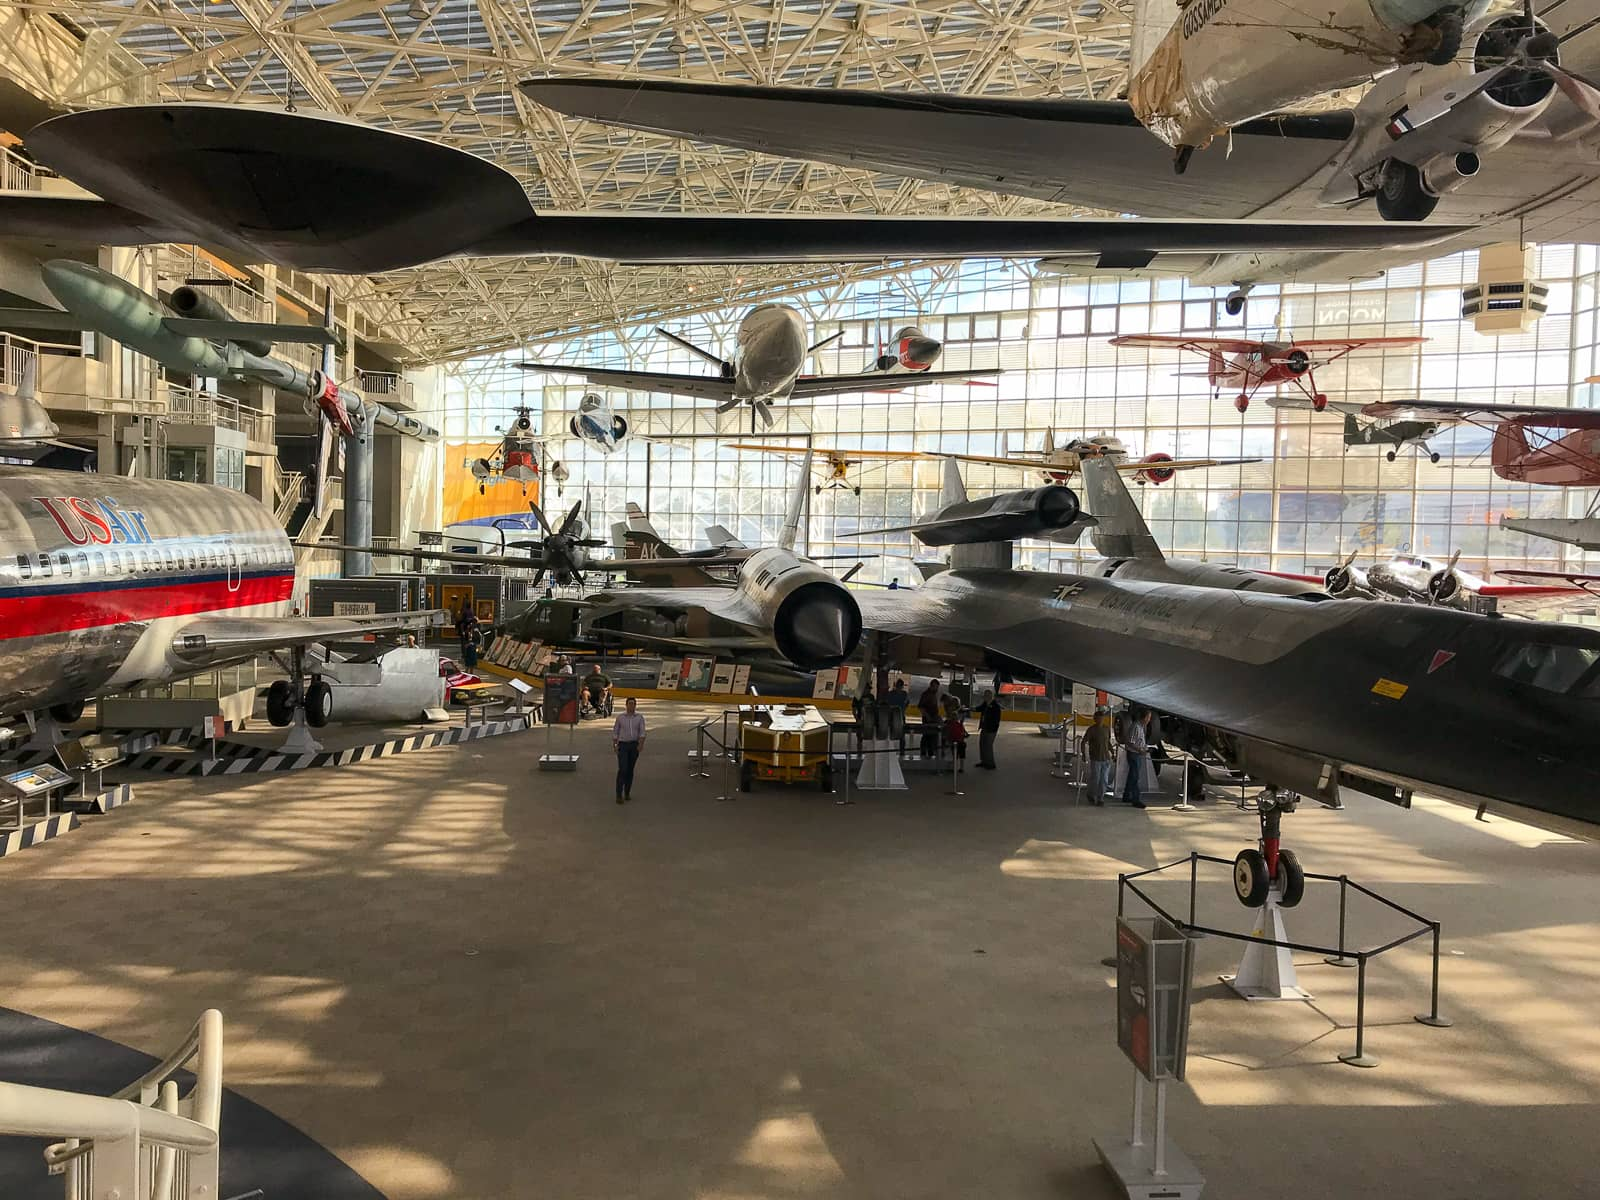 A big room with many lifesize models of airplanes on display, some hanging from the roof